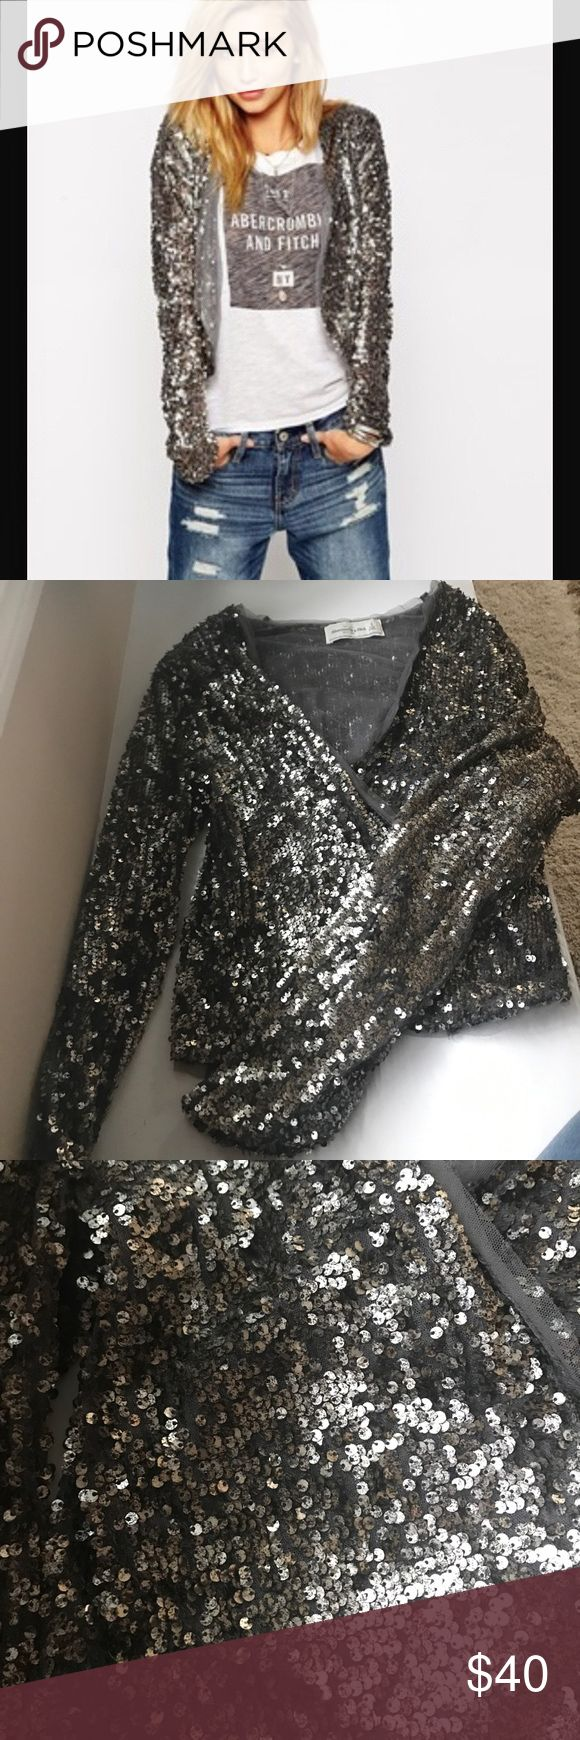 Abercrombie and Fitch sequin blazer/jacket Worn once for a couple of hours! Excellent condition, can be dressed down! (I wore with jeans and a T-shirt during a day out) Abercrombie & Fitch Jackets & Coats Blazers